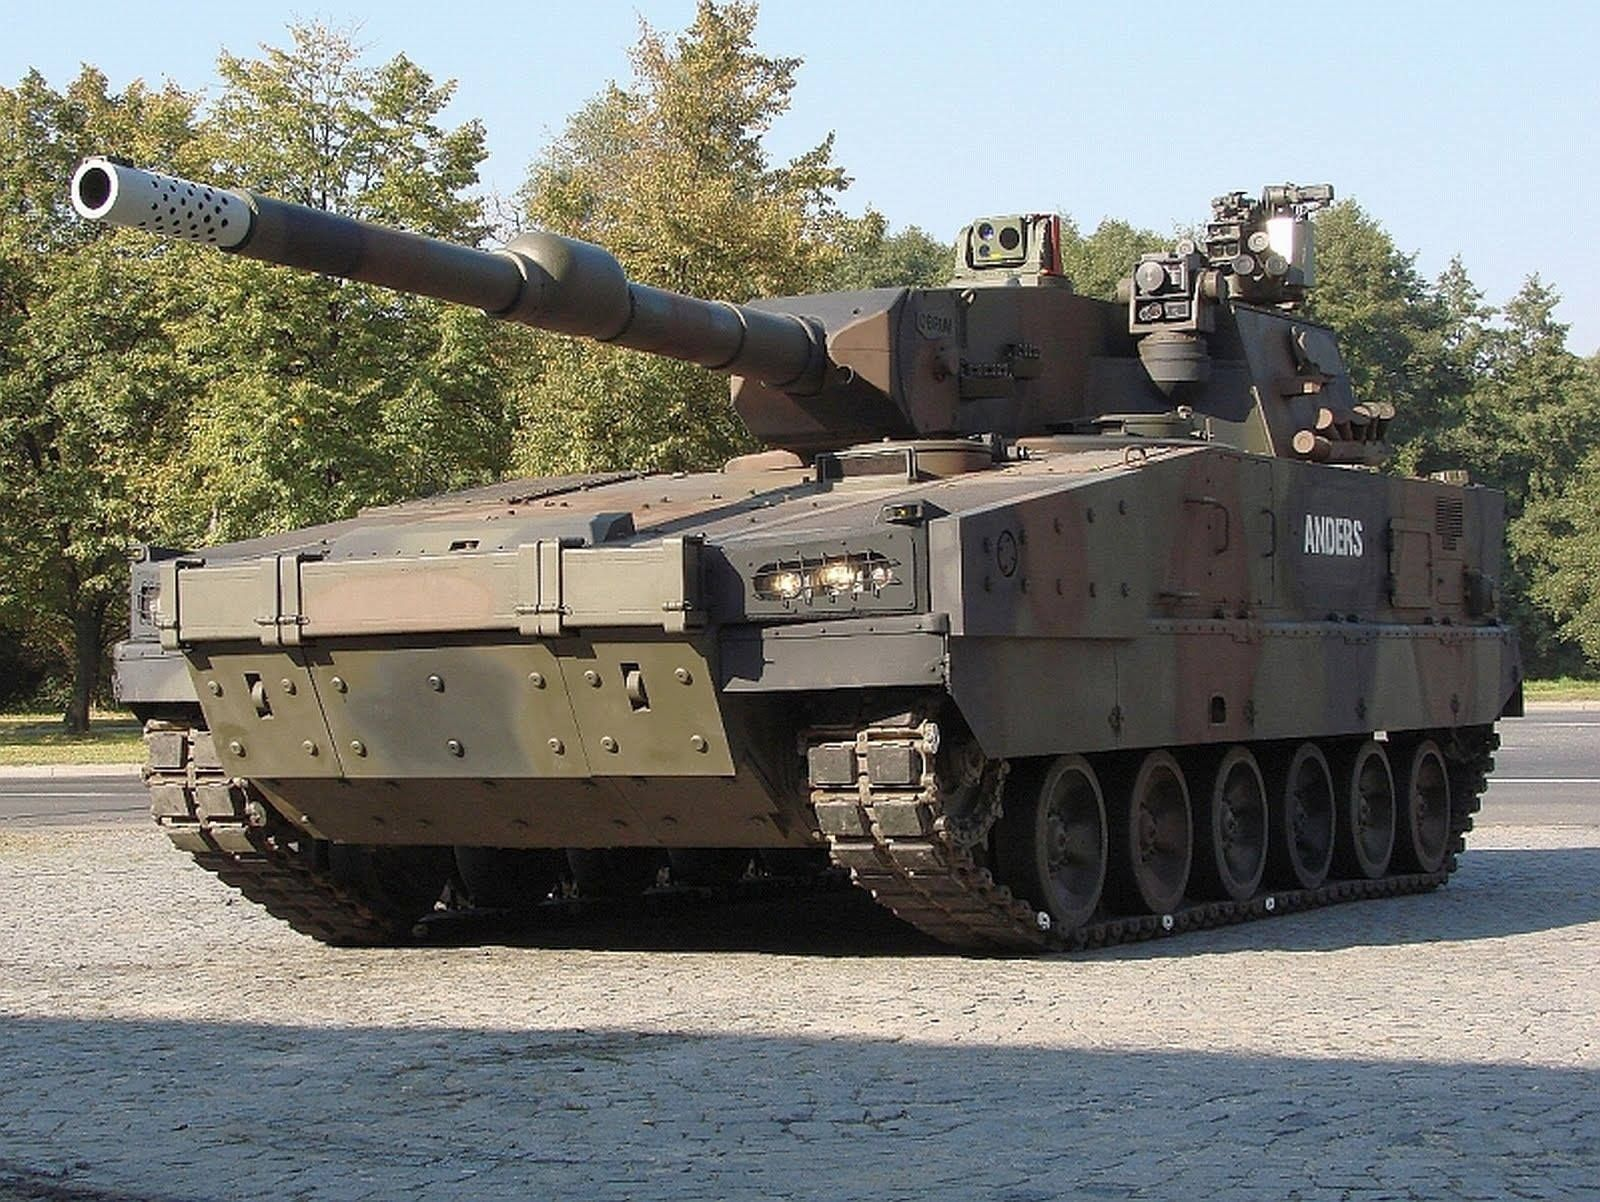 Polish Army - WPB Anders - Medium Tracked Armored Personnel Carrier